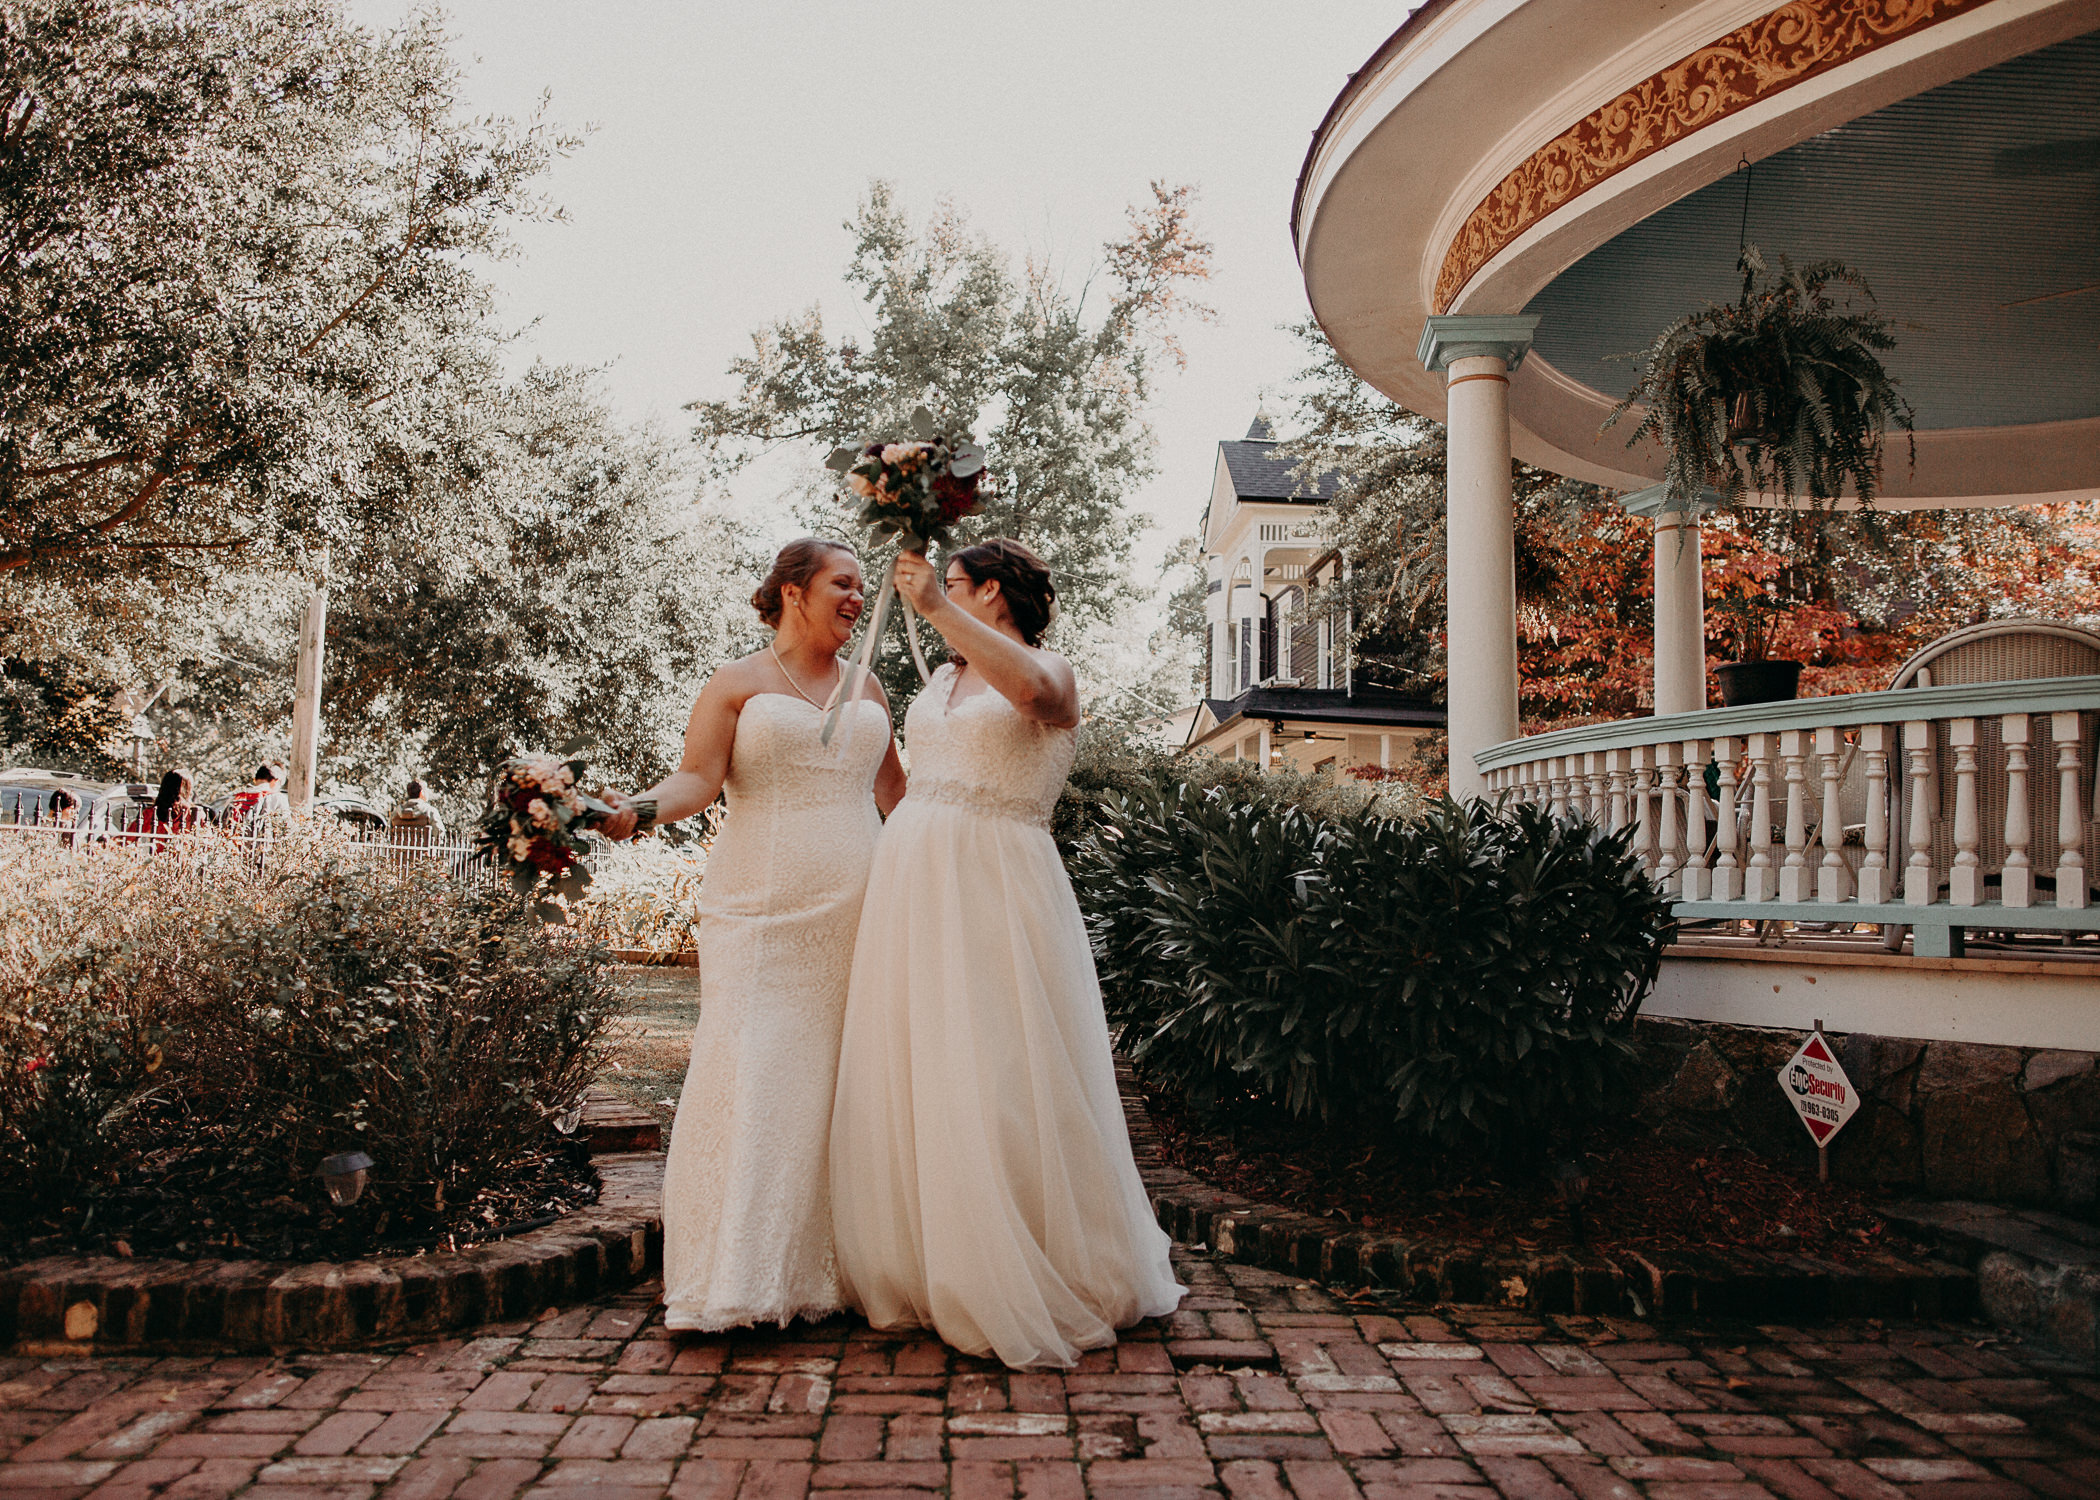 37 - Atlanta wedding photographer - Same sex wedding - wedding dress - details - ceremony - reception - bridal party - two brides. Aline Marin Photography .jpg.JPG